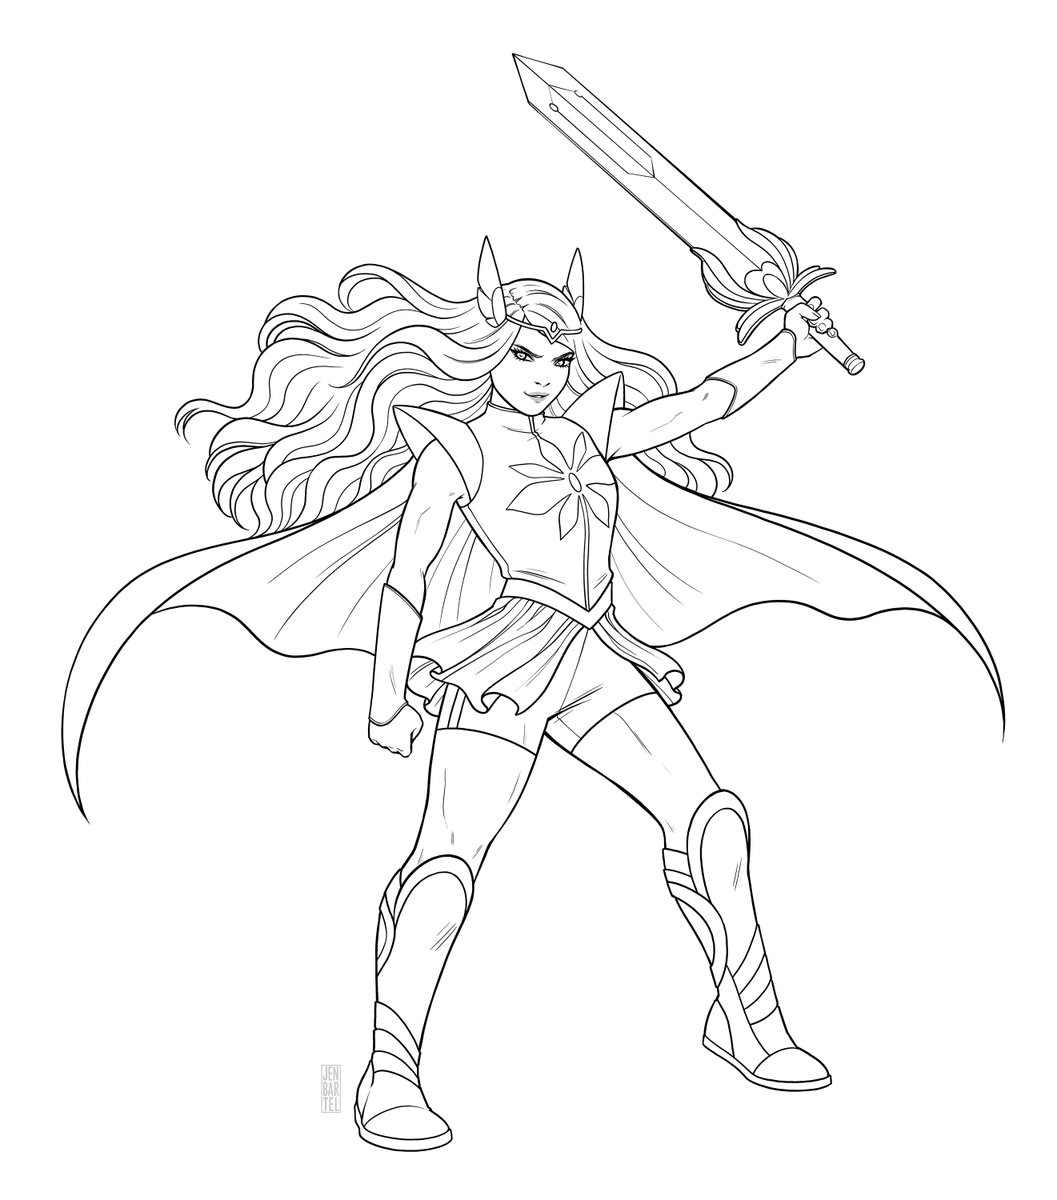 Netflix She Ra Coloring Pages - Coloring wall